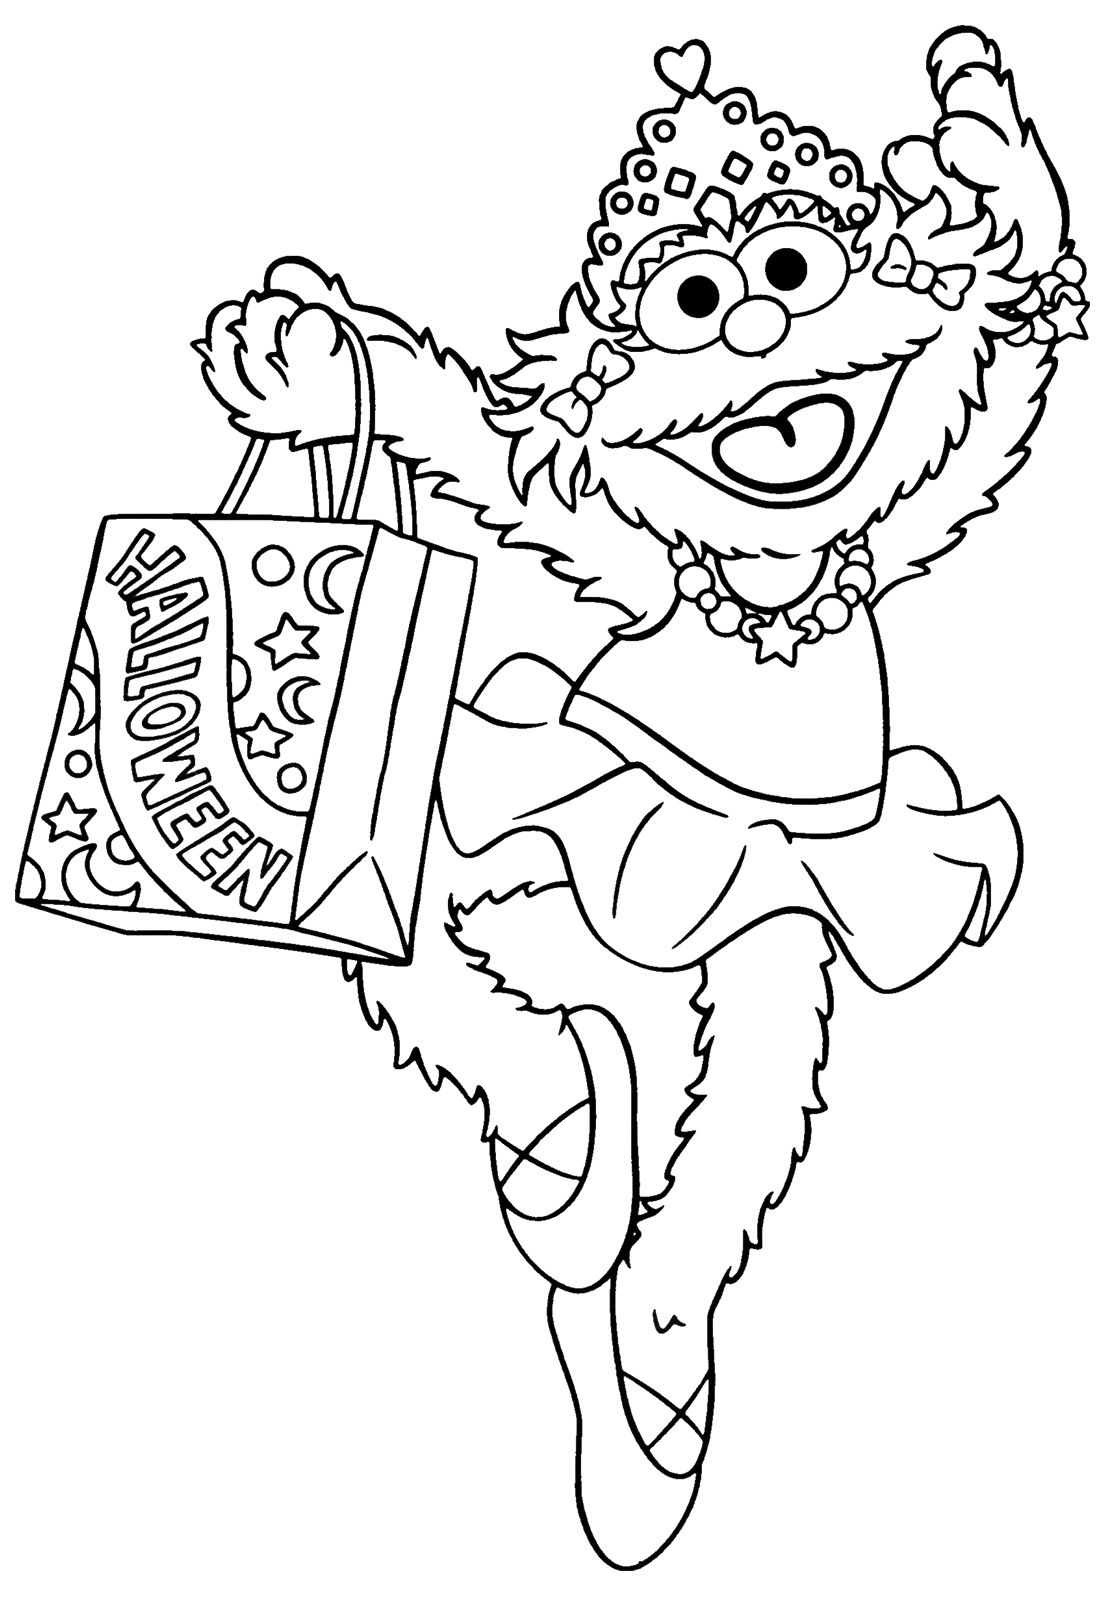 Printable Sesame Street Coloring Pages | Coloring Me